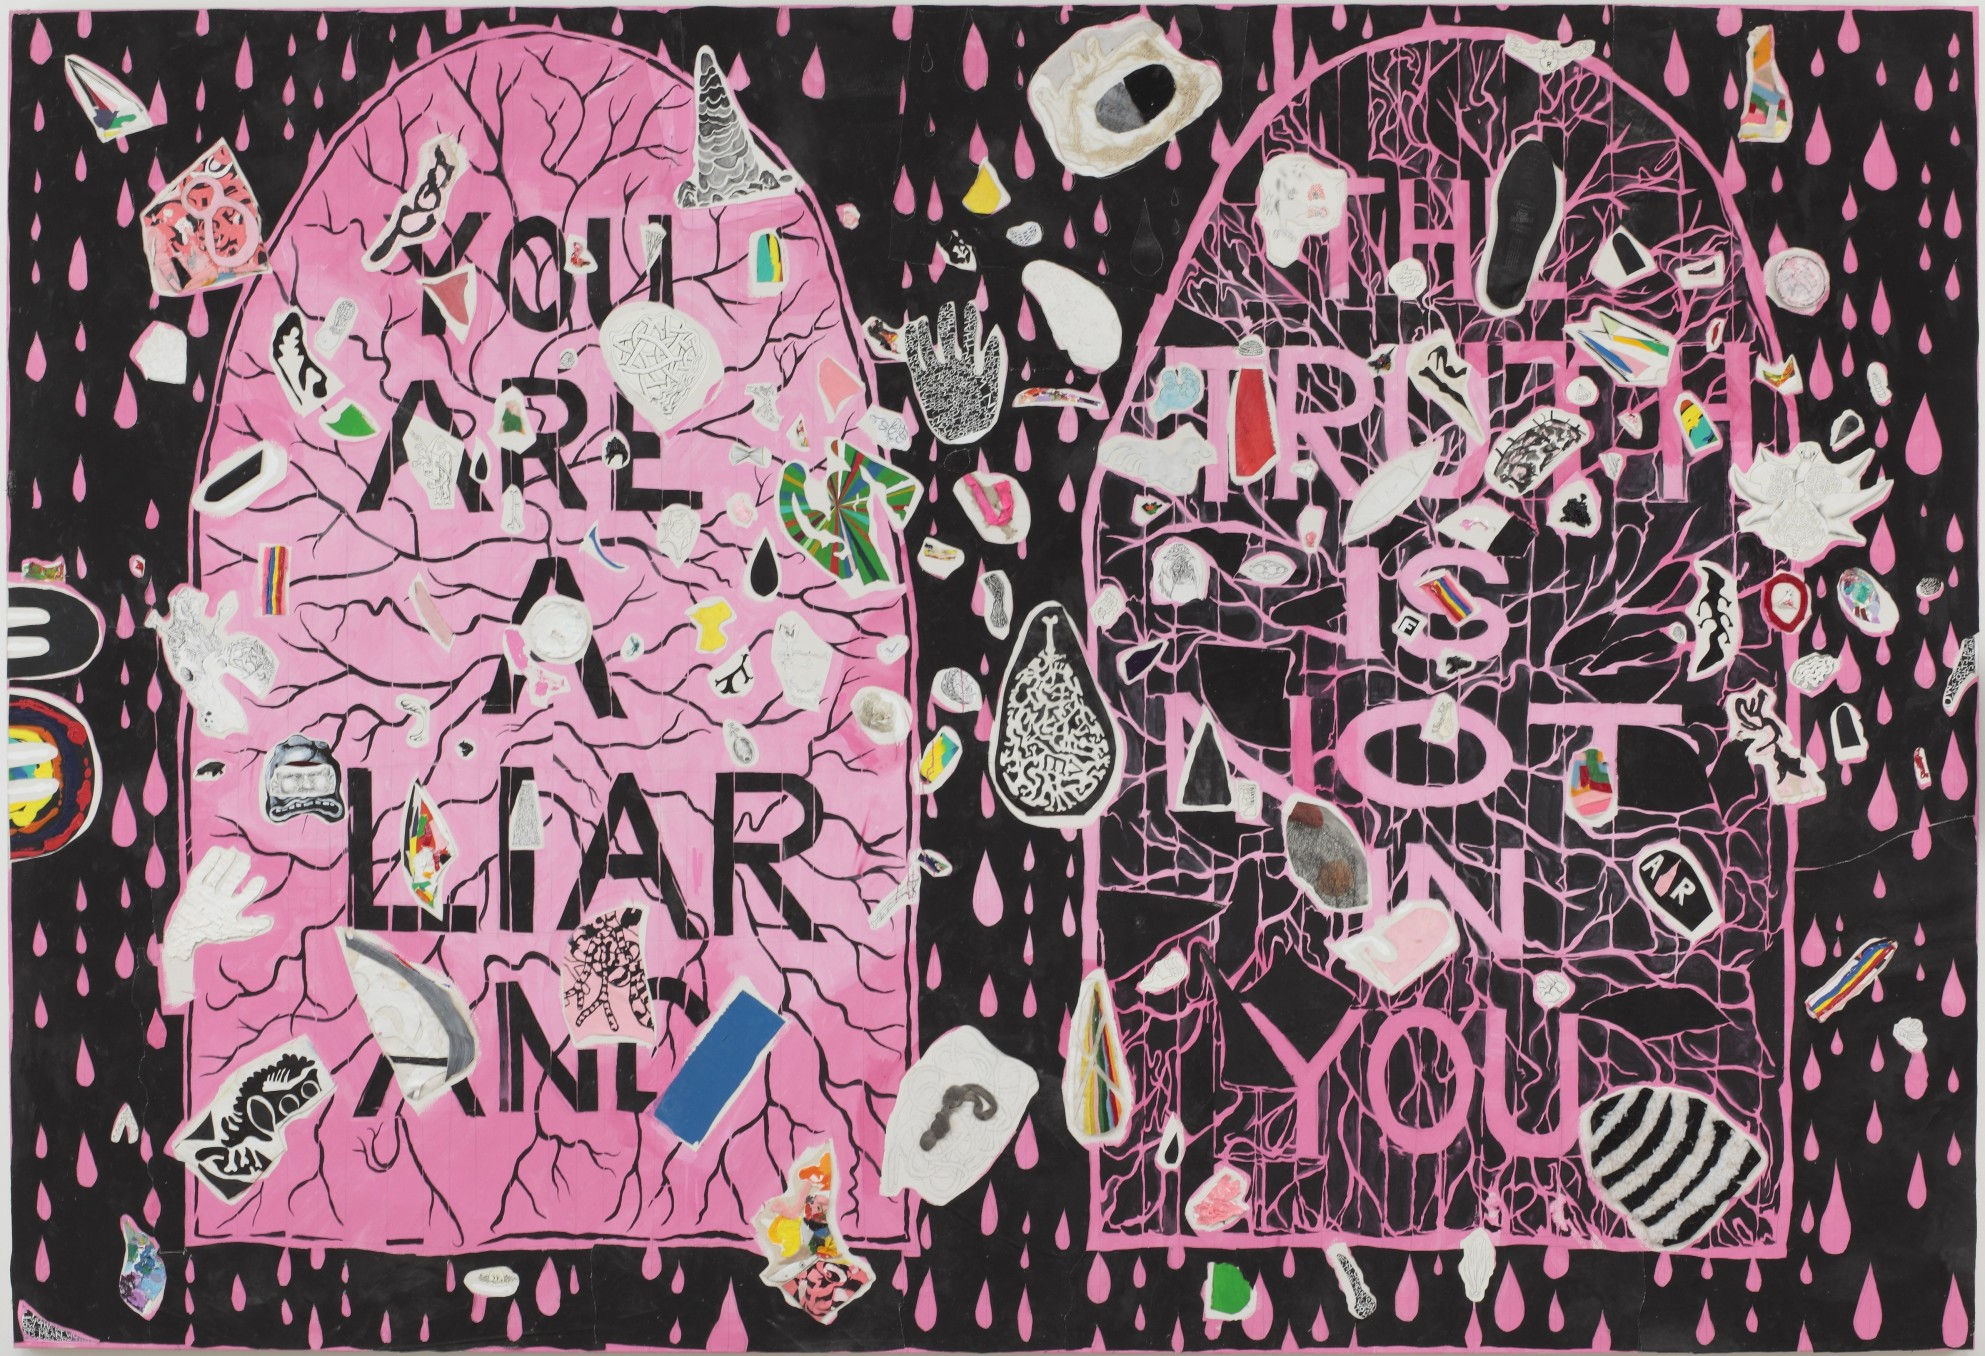 Trenton Doyle Hancock, You Are A Liar And The Truth Is NOT In You, 2010, Acrylic and mixed media on canvas, 228.6 x 335.3 cm, 90 x 132 in